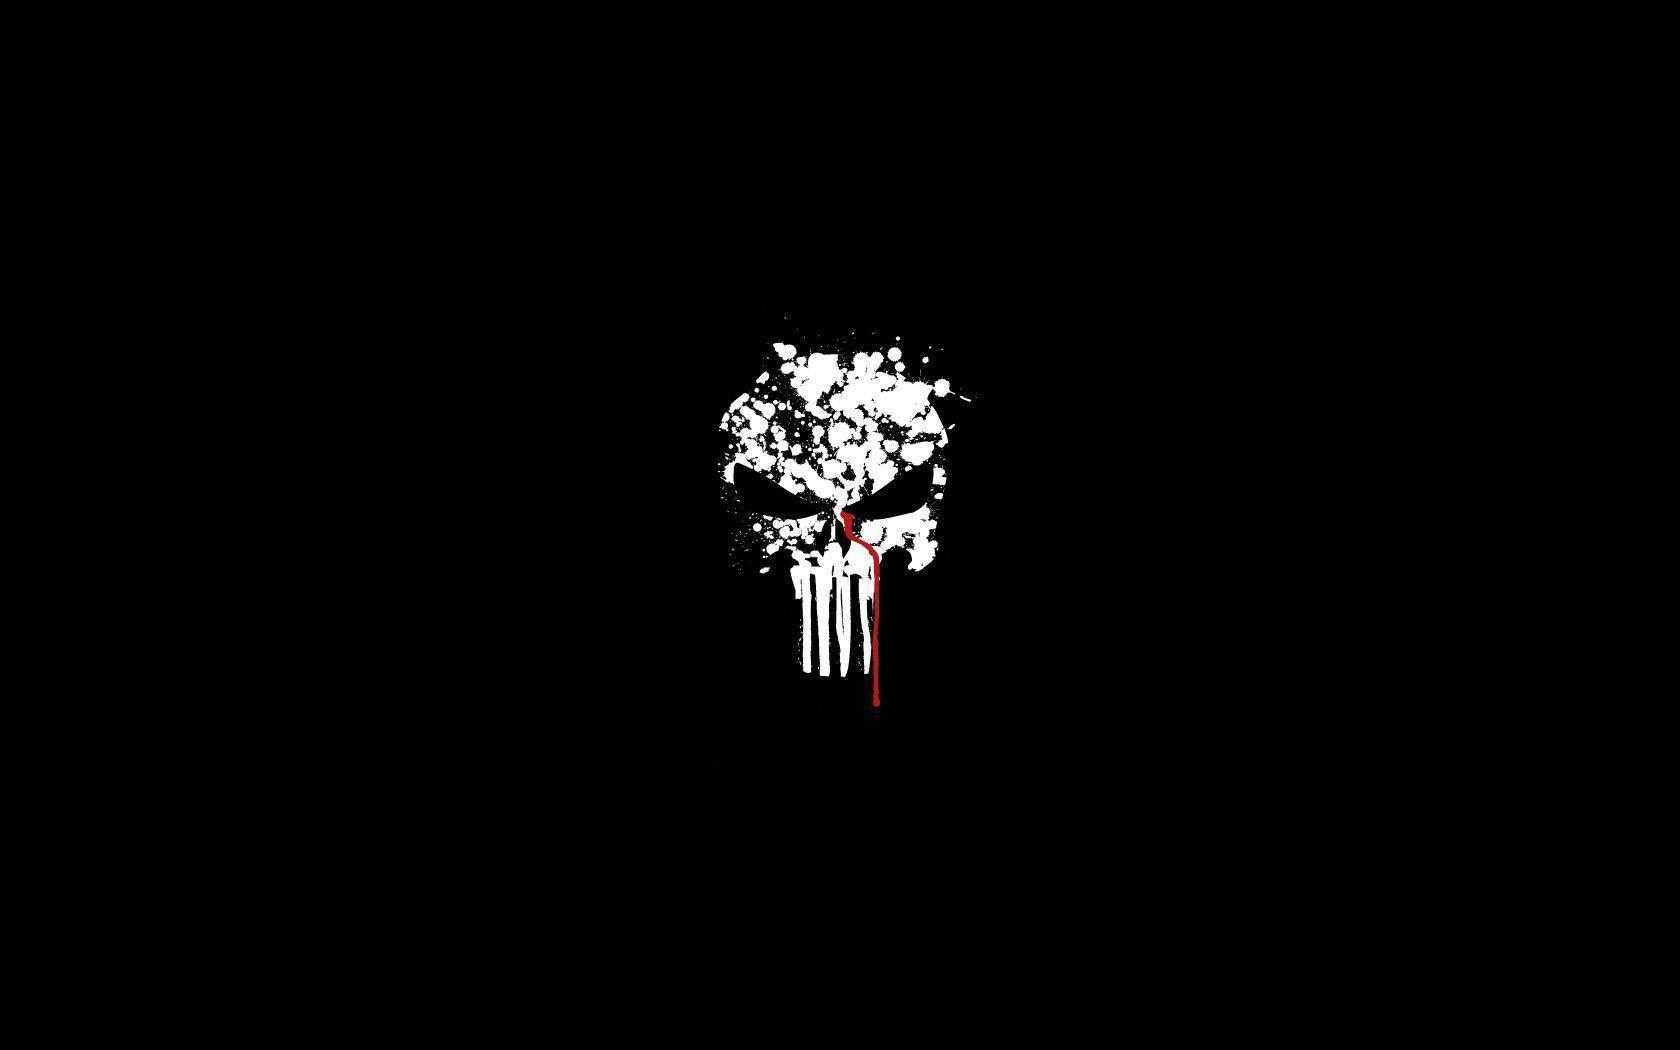 punisher logo wallpapers - photo #13